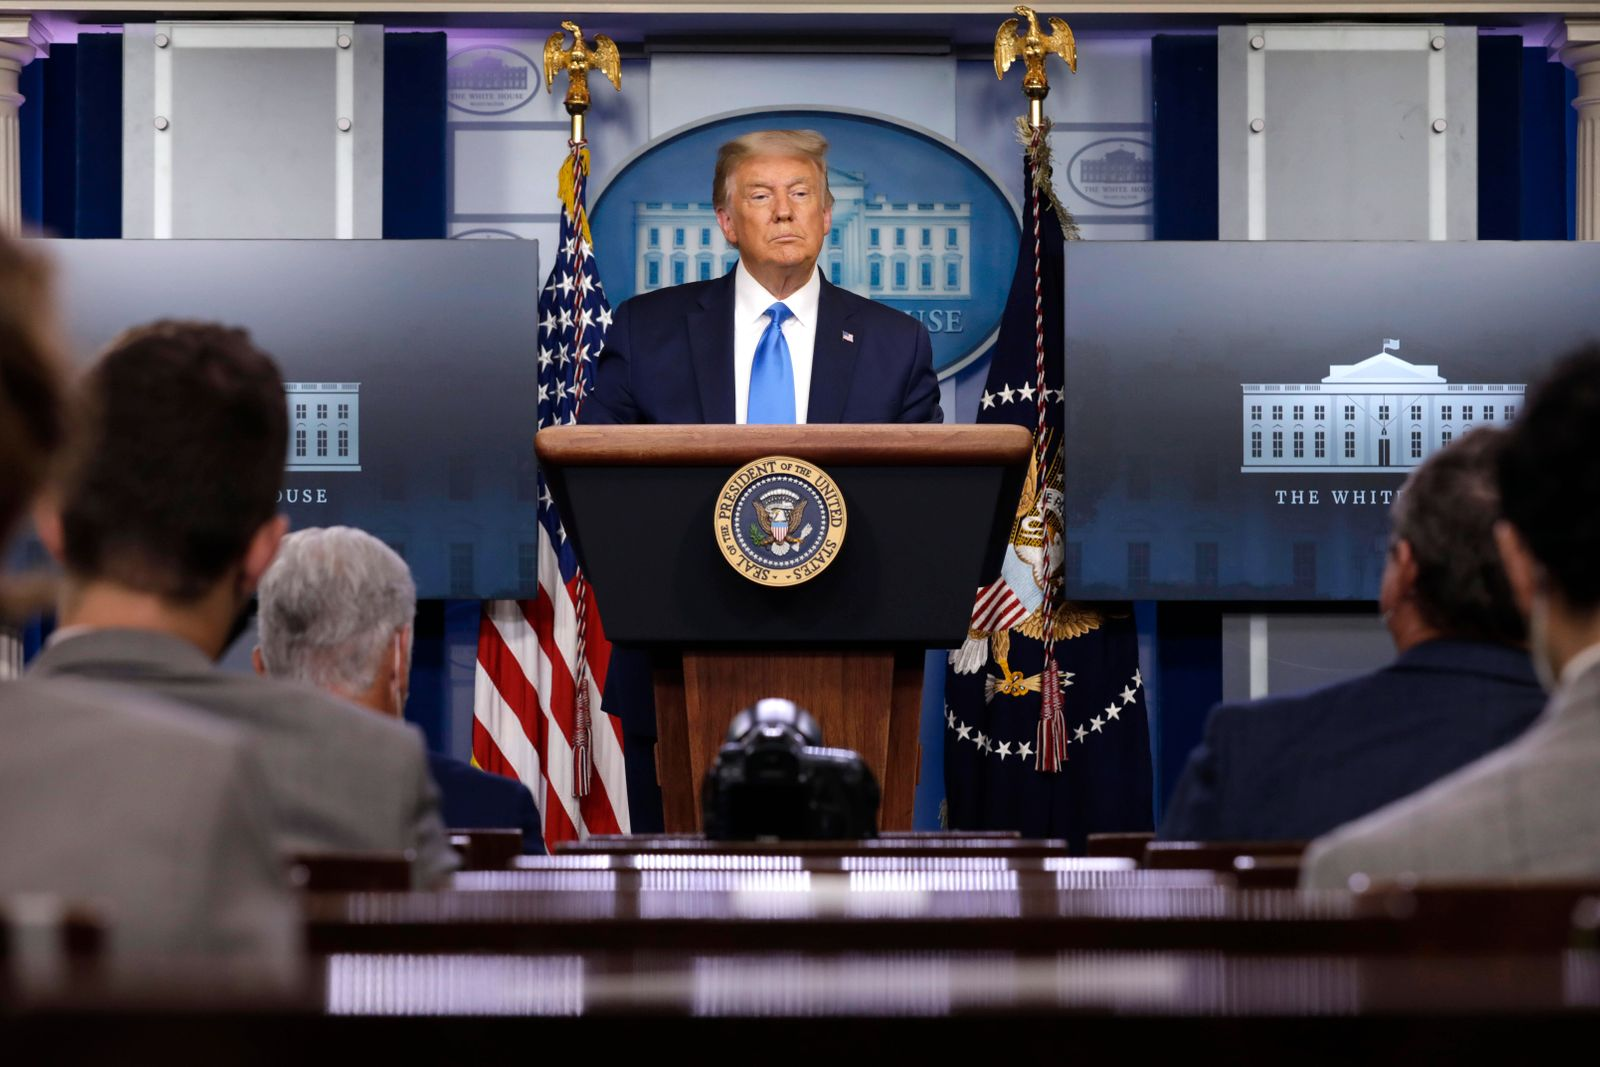 September 23, 2020, Washington, District of Columbia, USA: United States President Donald J. Trump speaks during a news